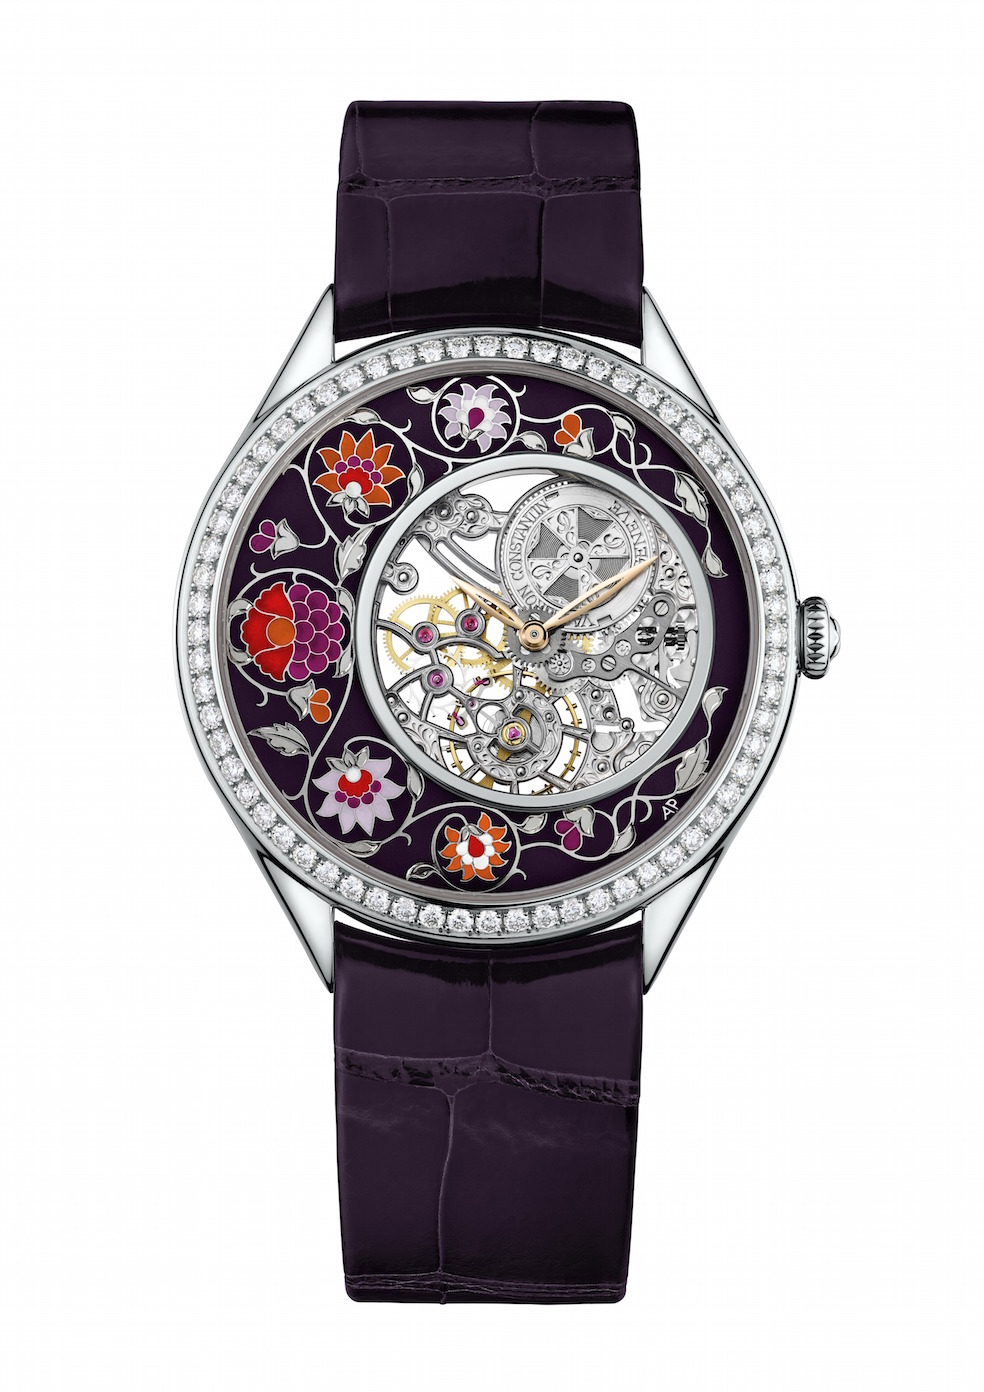 Fabuleux ornements watches are powered by in-house made mechanical movements.